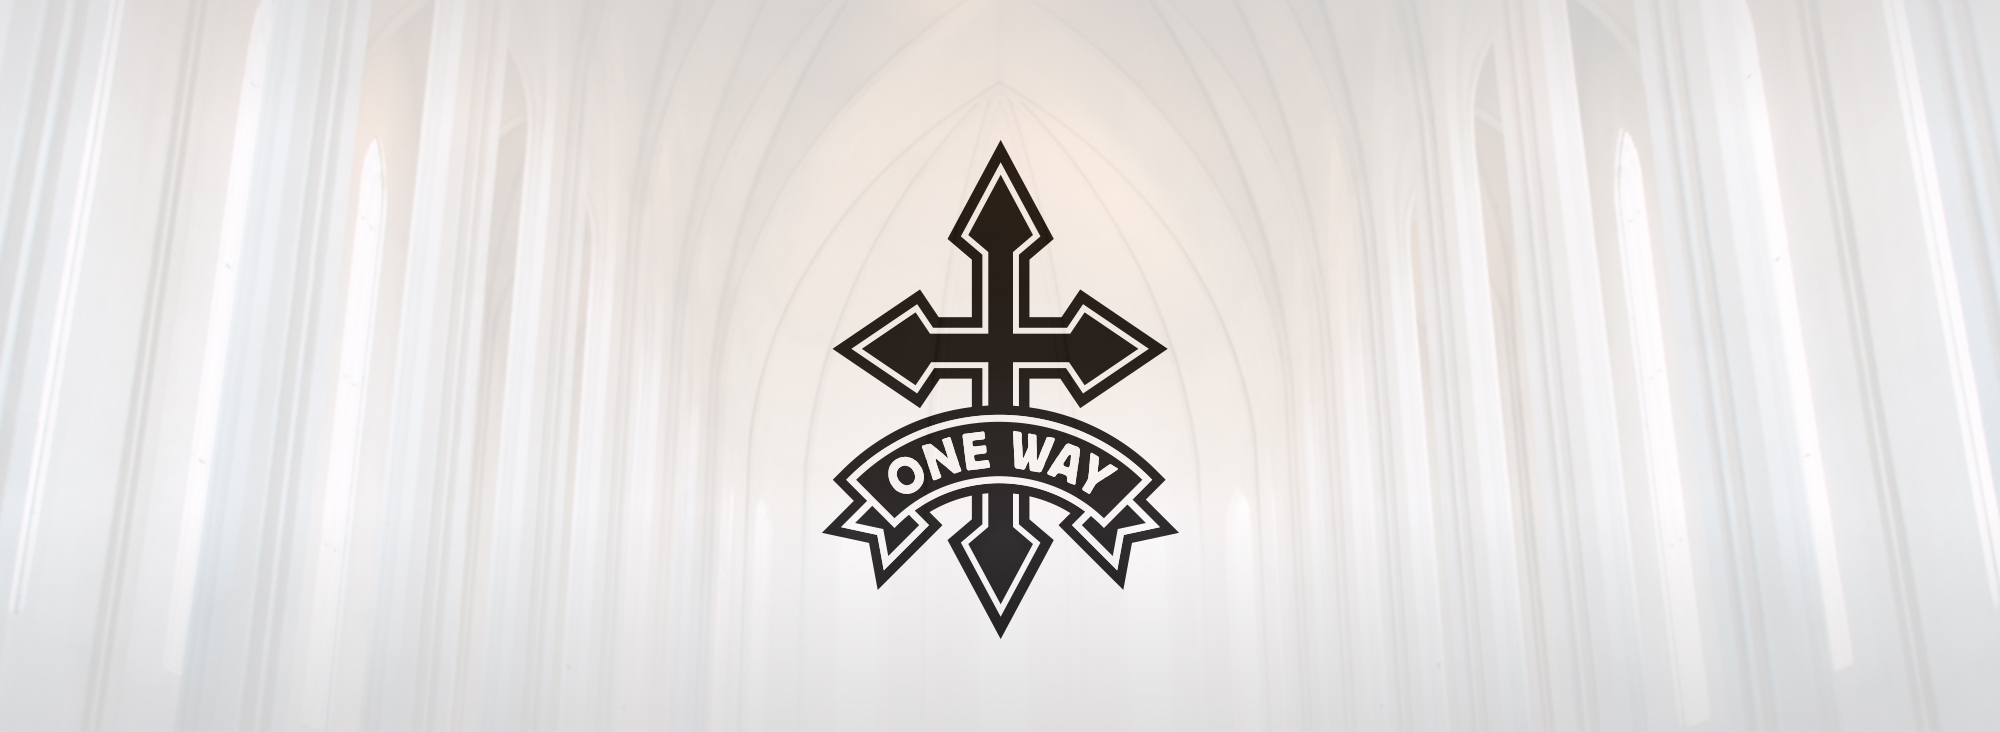 Onewaylogo background